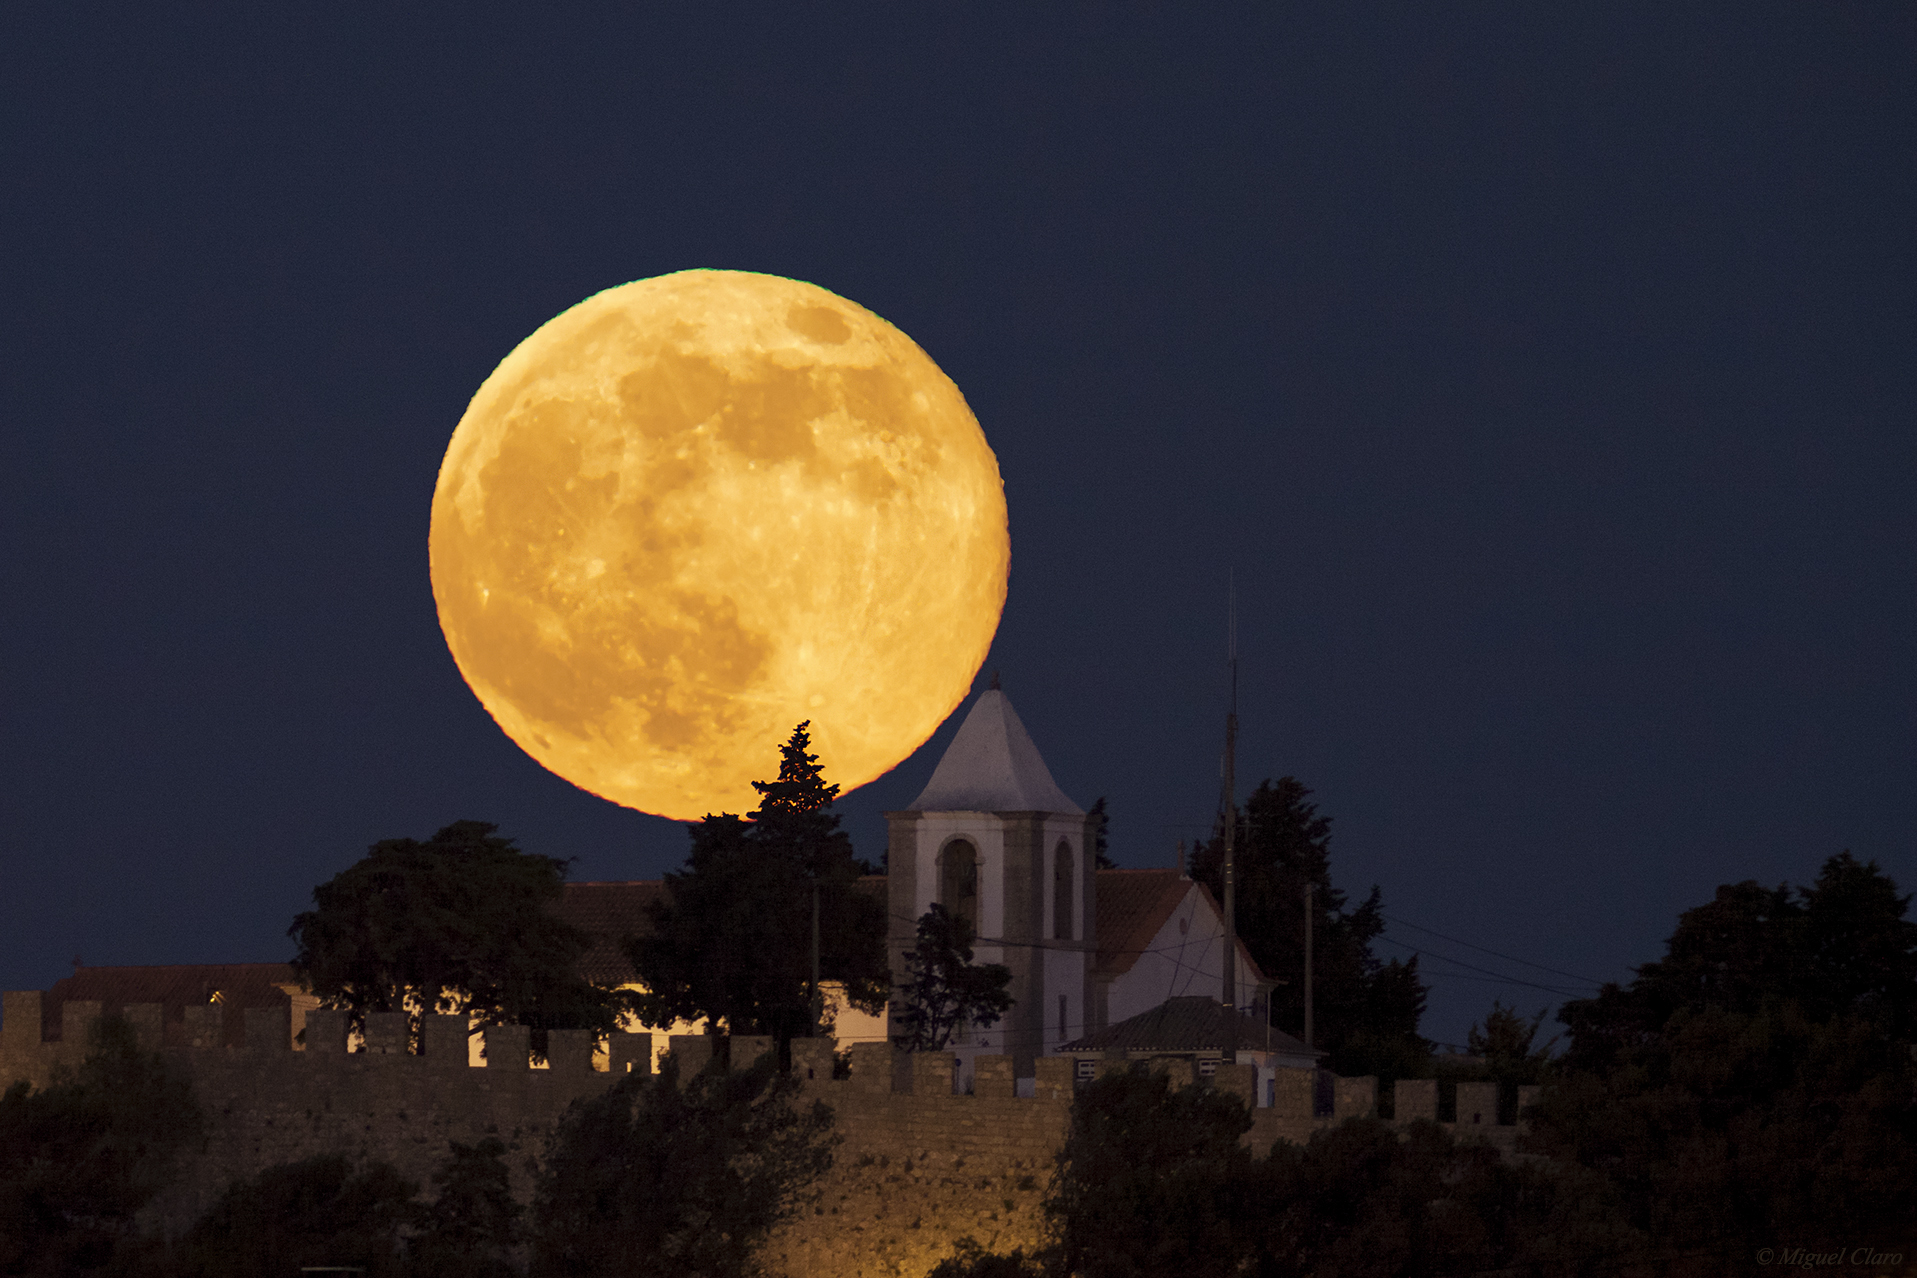 <h5>The Super Full Moon of 2013</h5>